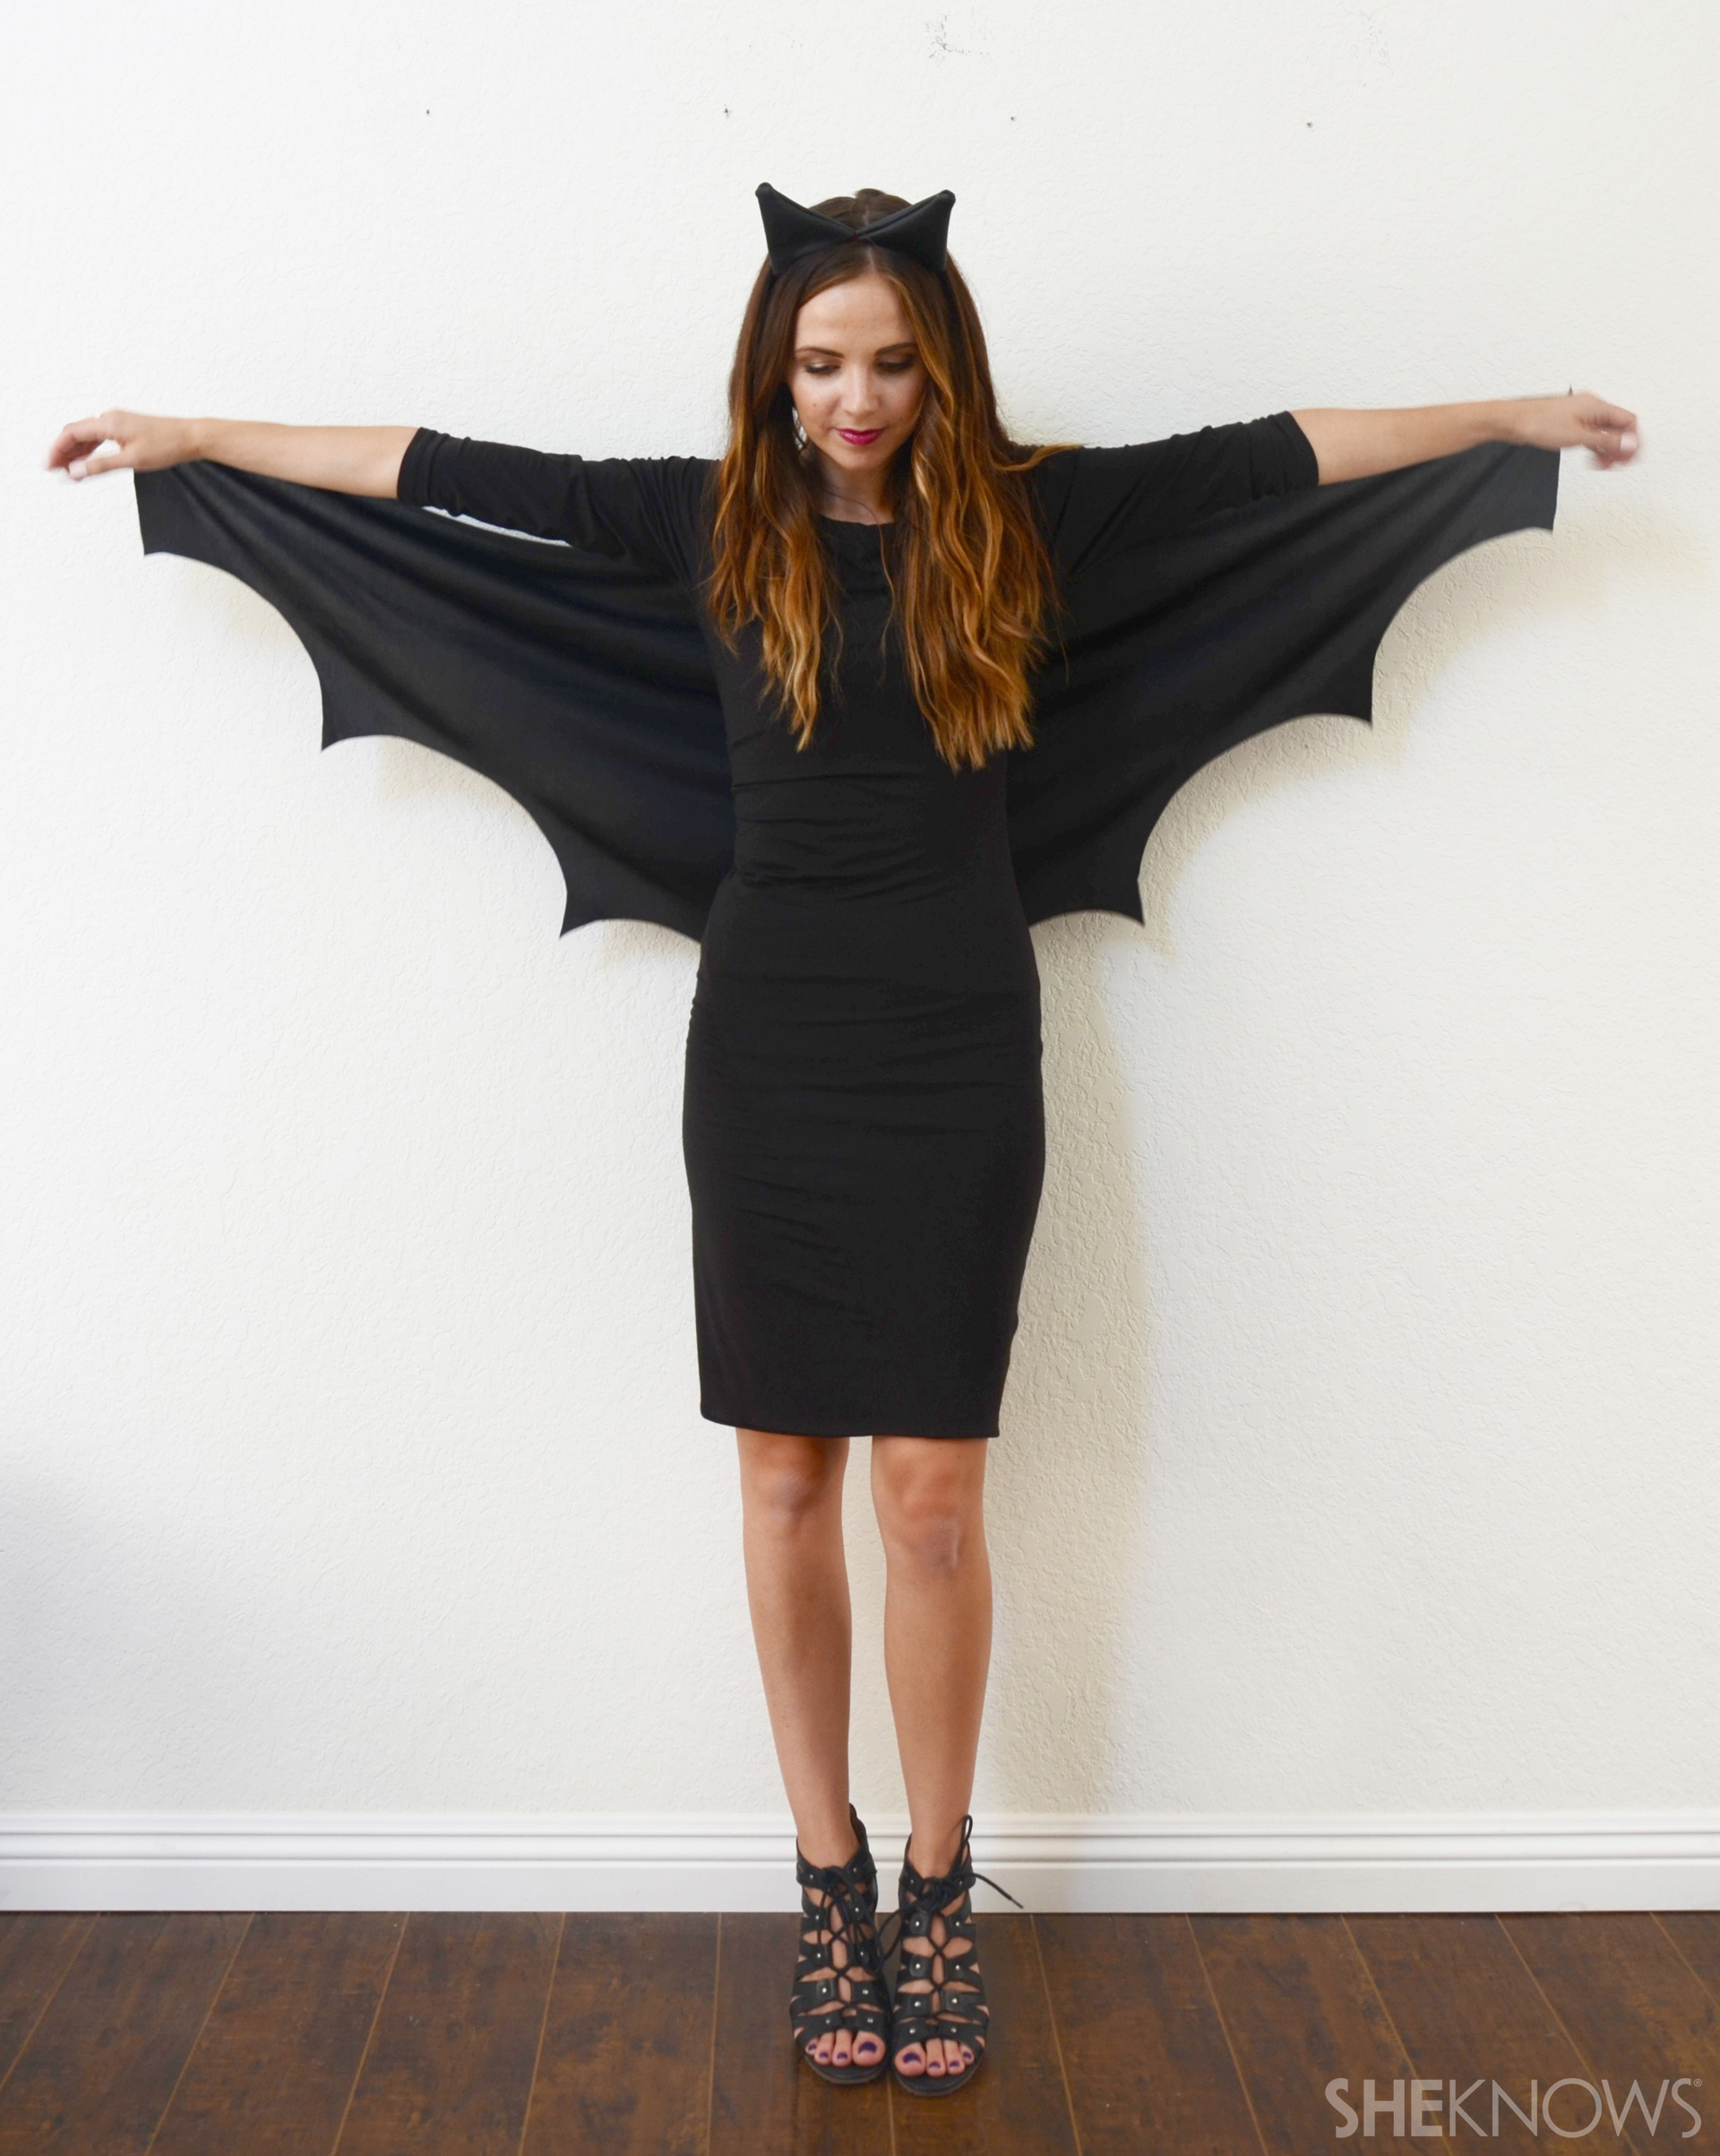 A Diy Bat Costume So Easy No One Will Know It Only Took 10